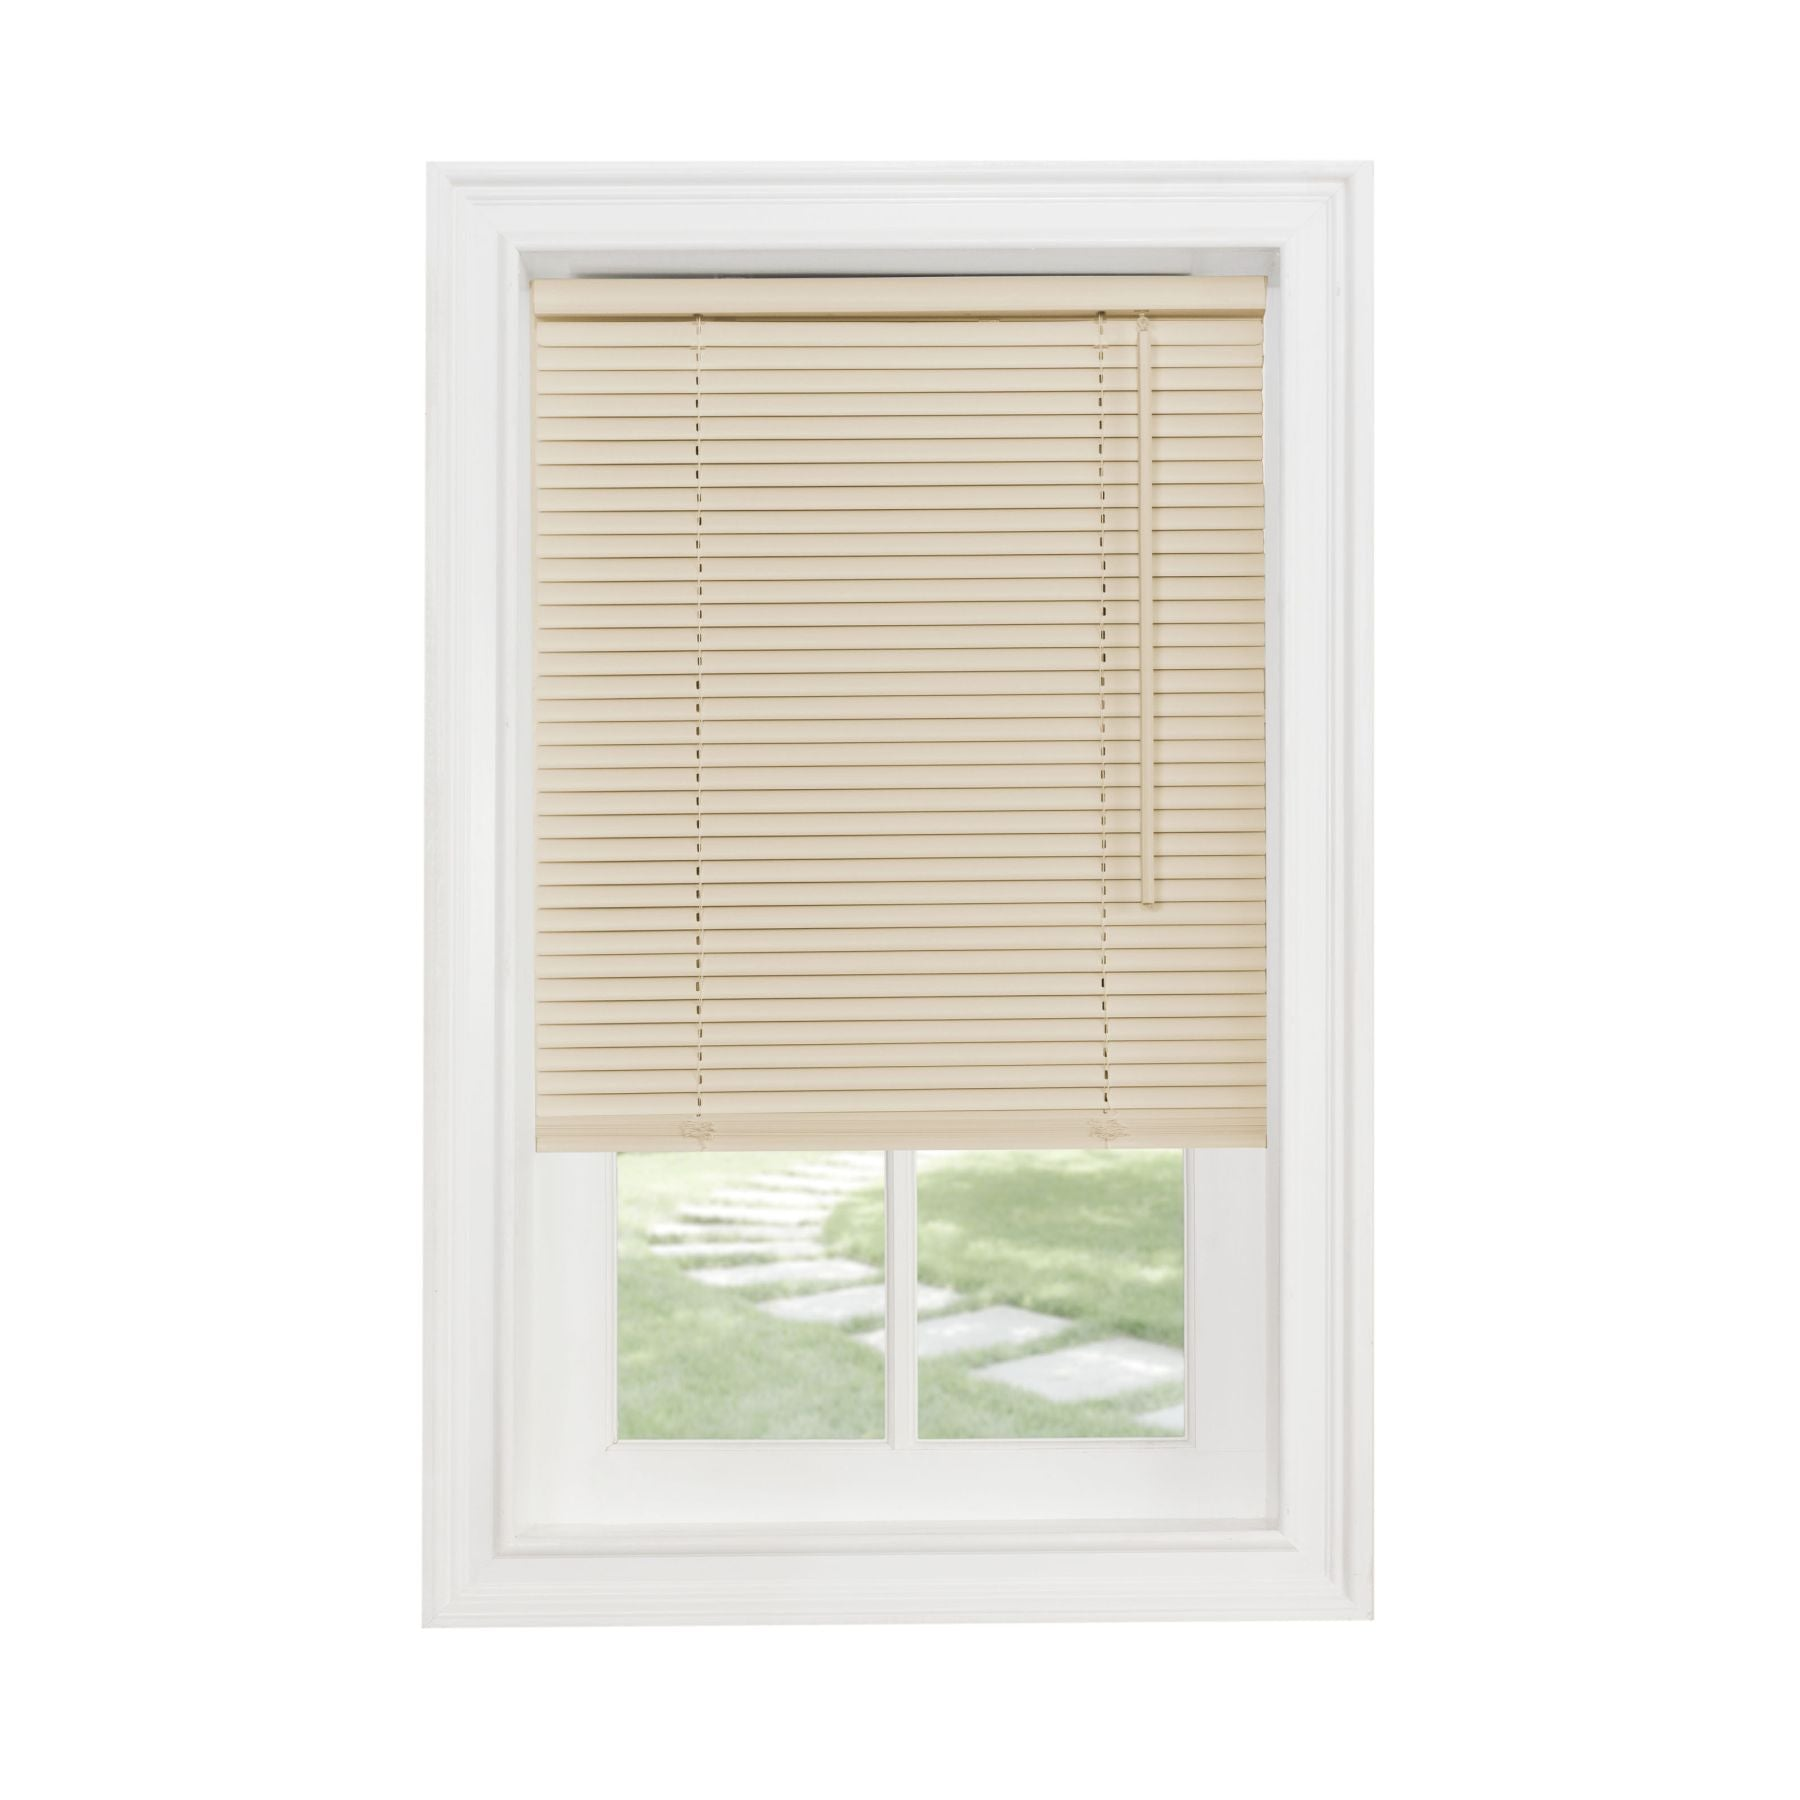 "Traditional Elegance Cordless Sunrise 1"" Light Filtering Mini Blind 30x64 - Alabaster"